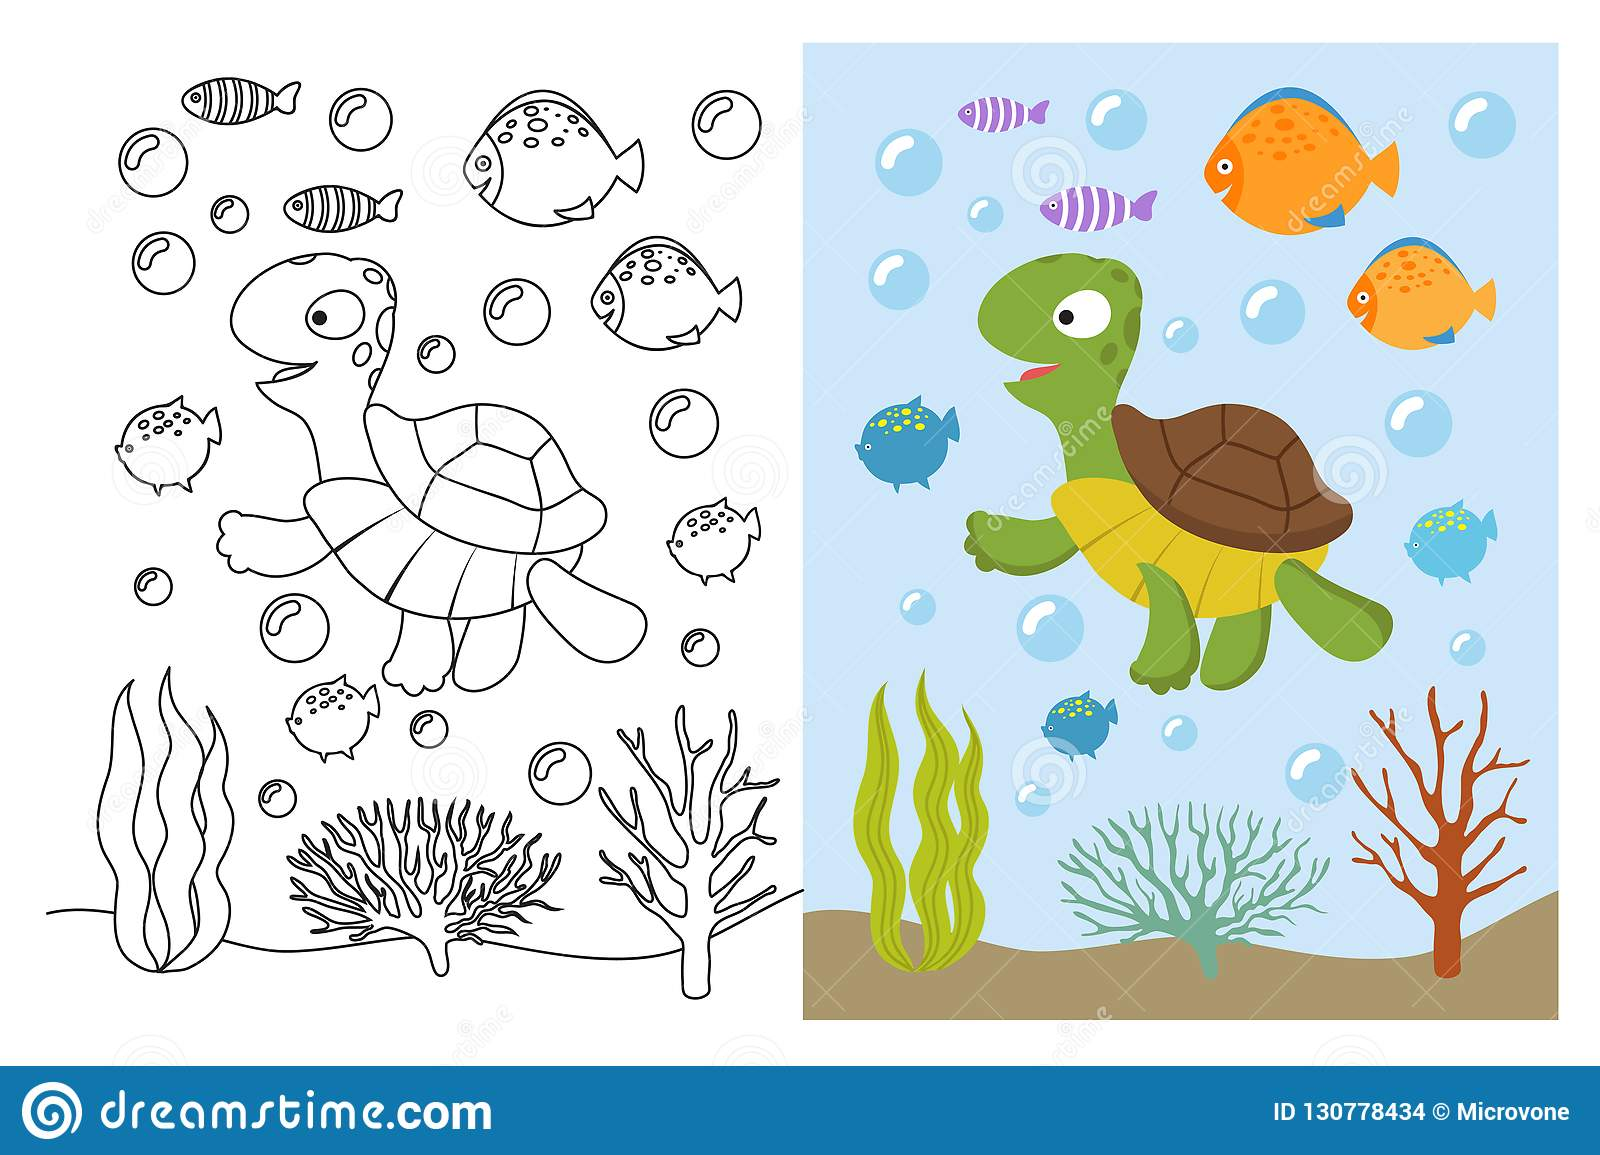 turtle coloring pages cartoon swimming sea animals underwater vector illustration kids coloring book underwater sea turtle